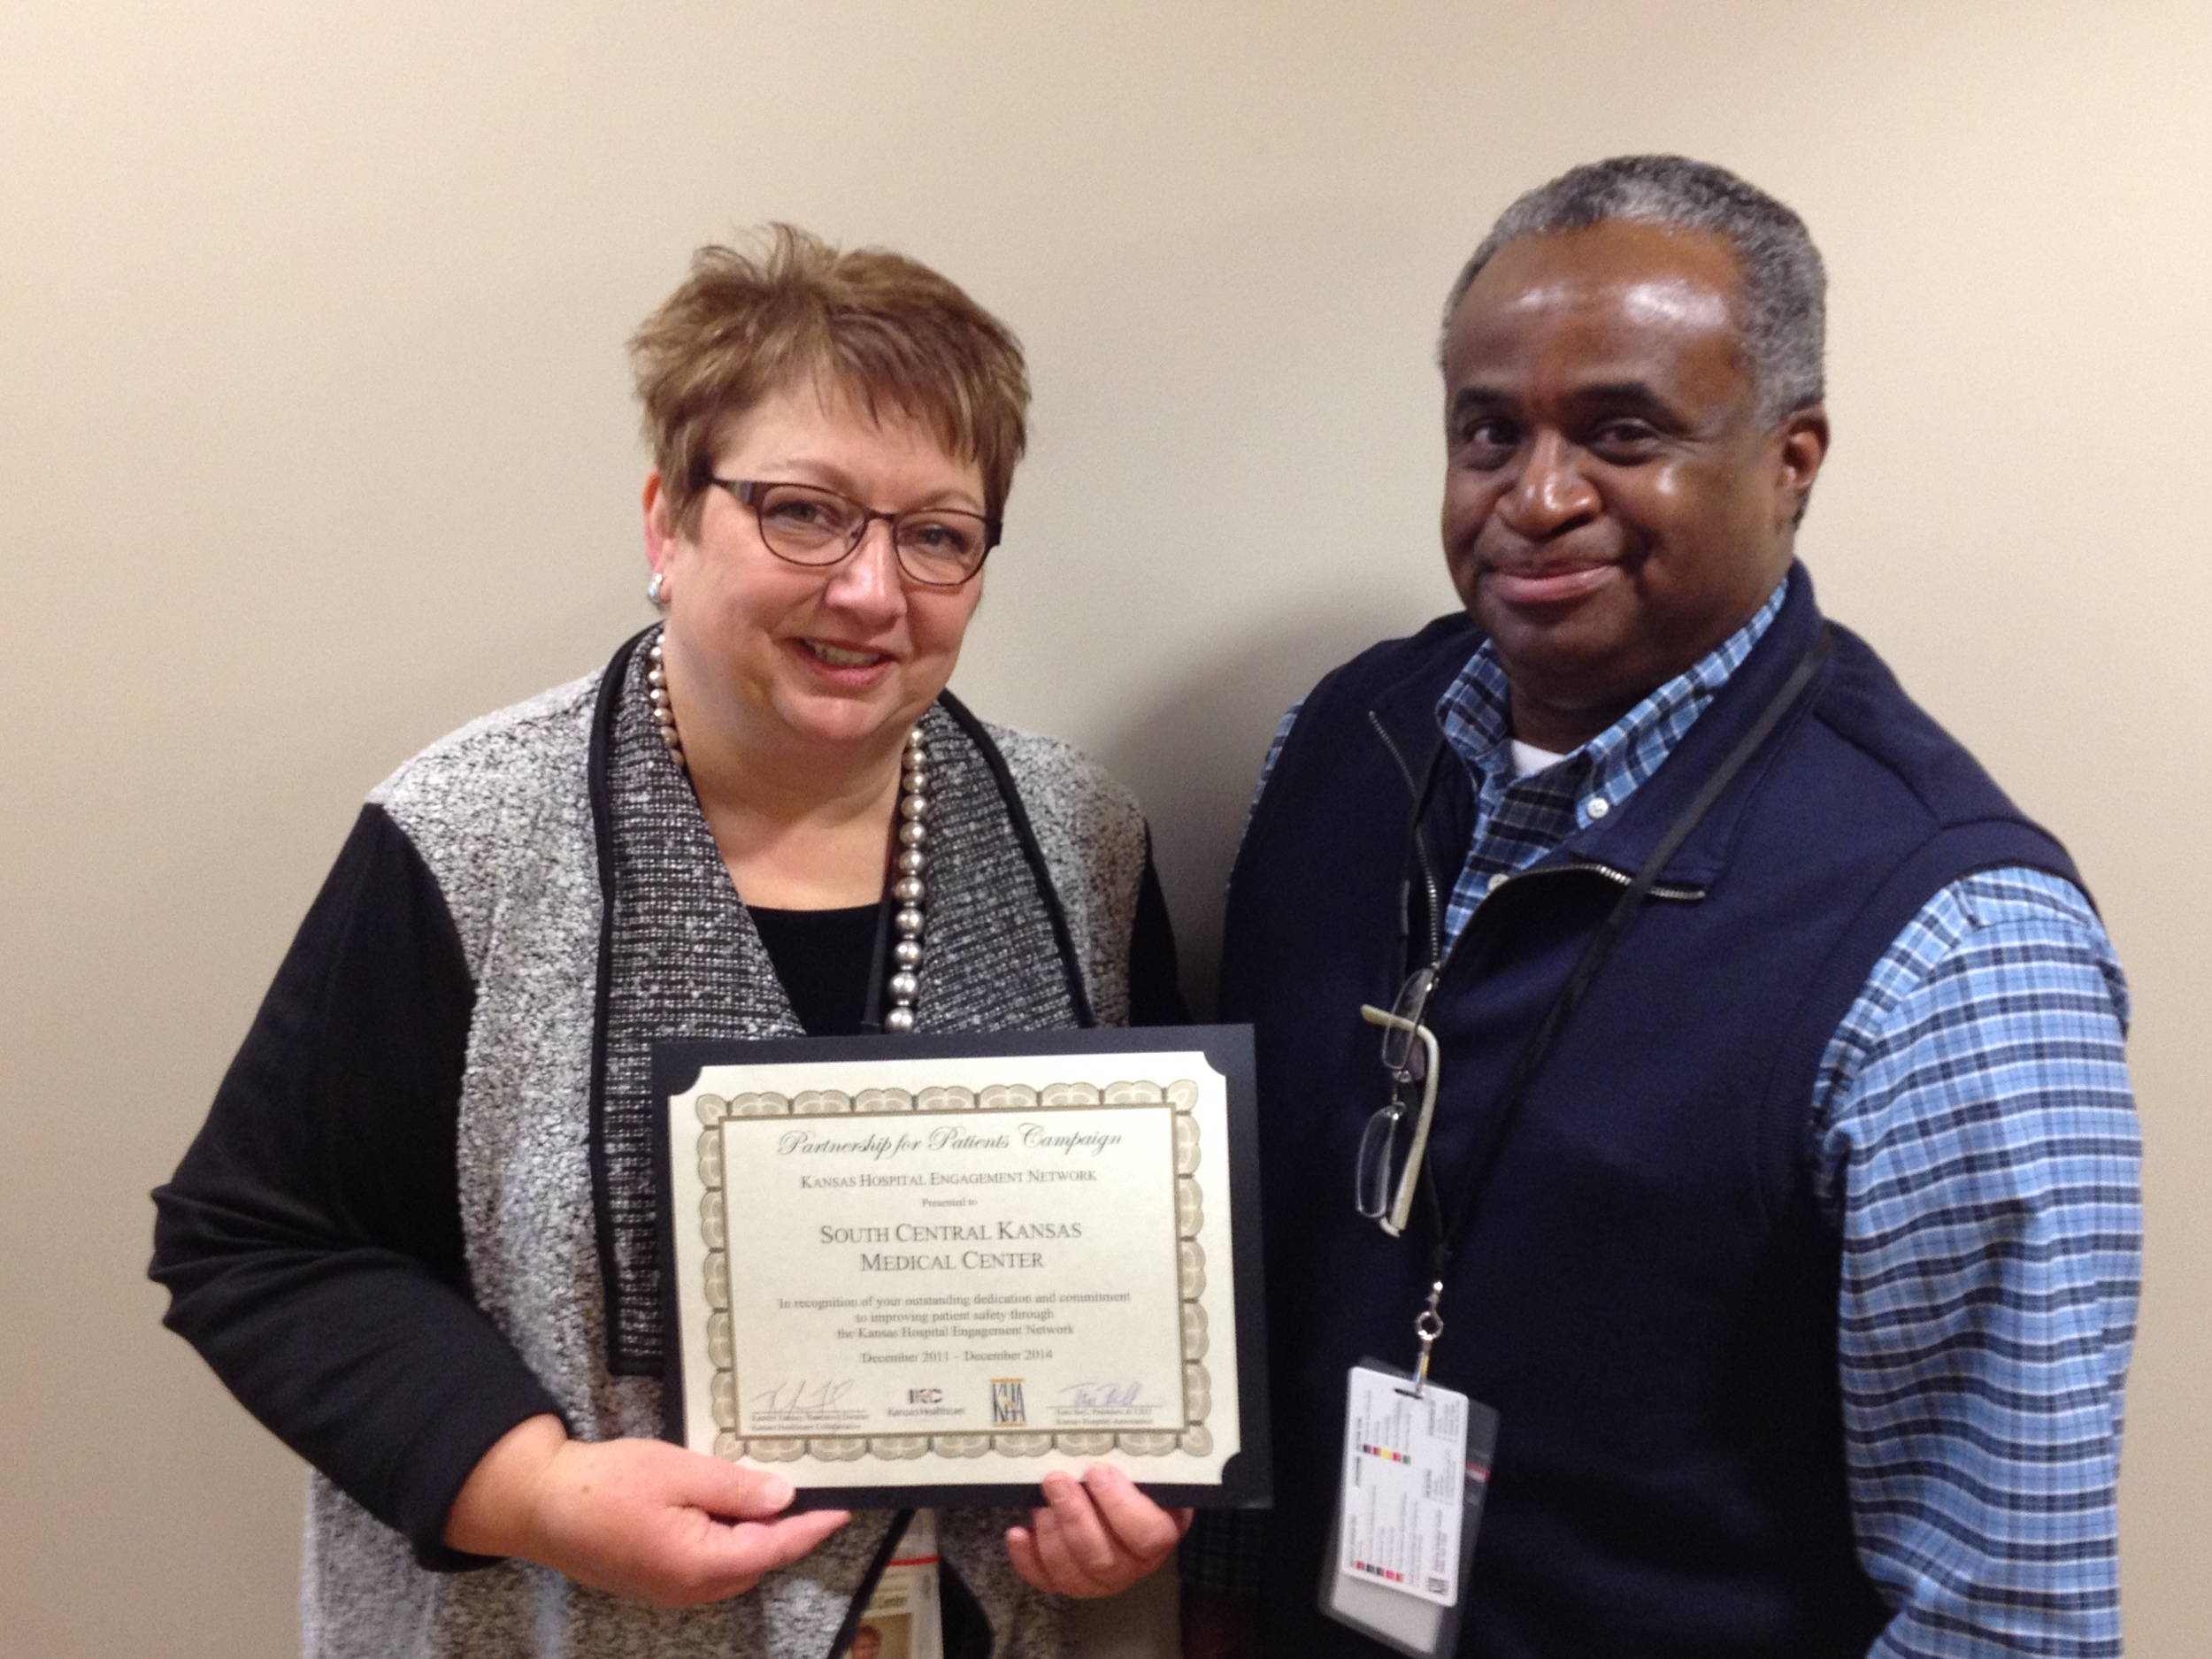 """(Pictured): Virgil Watson, SCKMC's Chief Executive Officer and Jane Campbell, the hospital's Director of Hospital Quality and Risk Management, display the certificate presented by the Kansas Healthcare Collaborative for """"outstanding dedication and commitment to improving patient safety through the Kansas Hospital Engagement Network."""""""